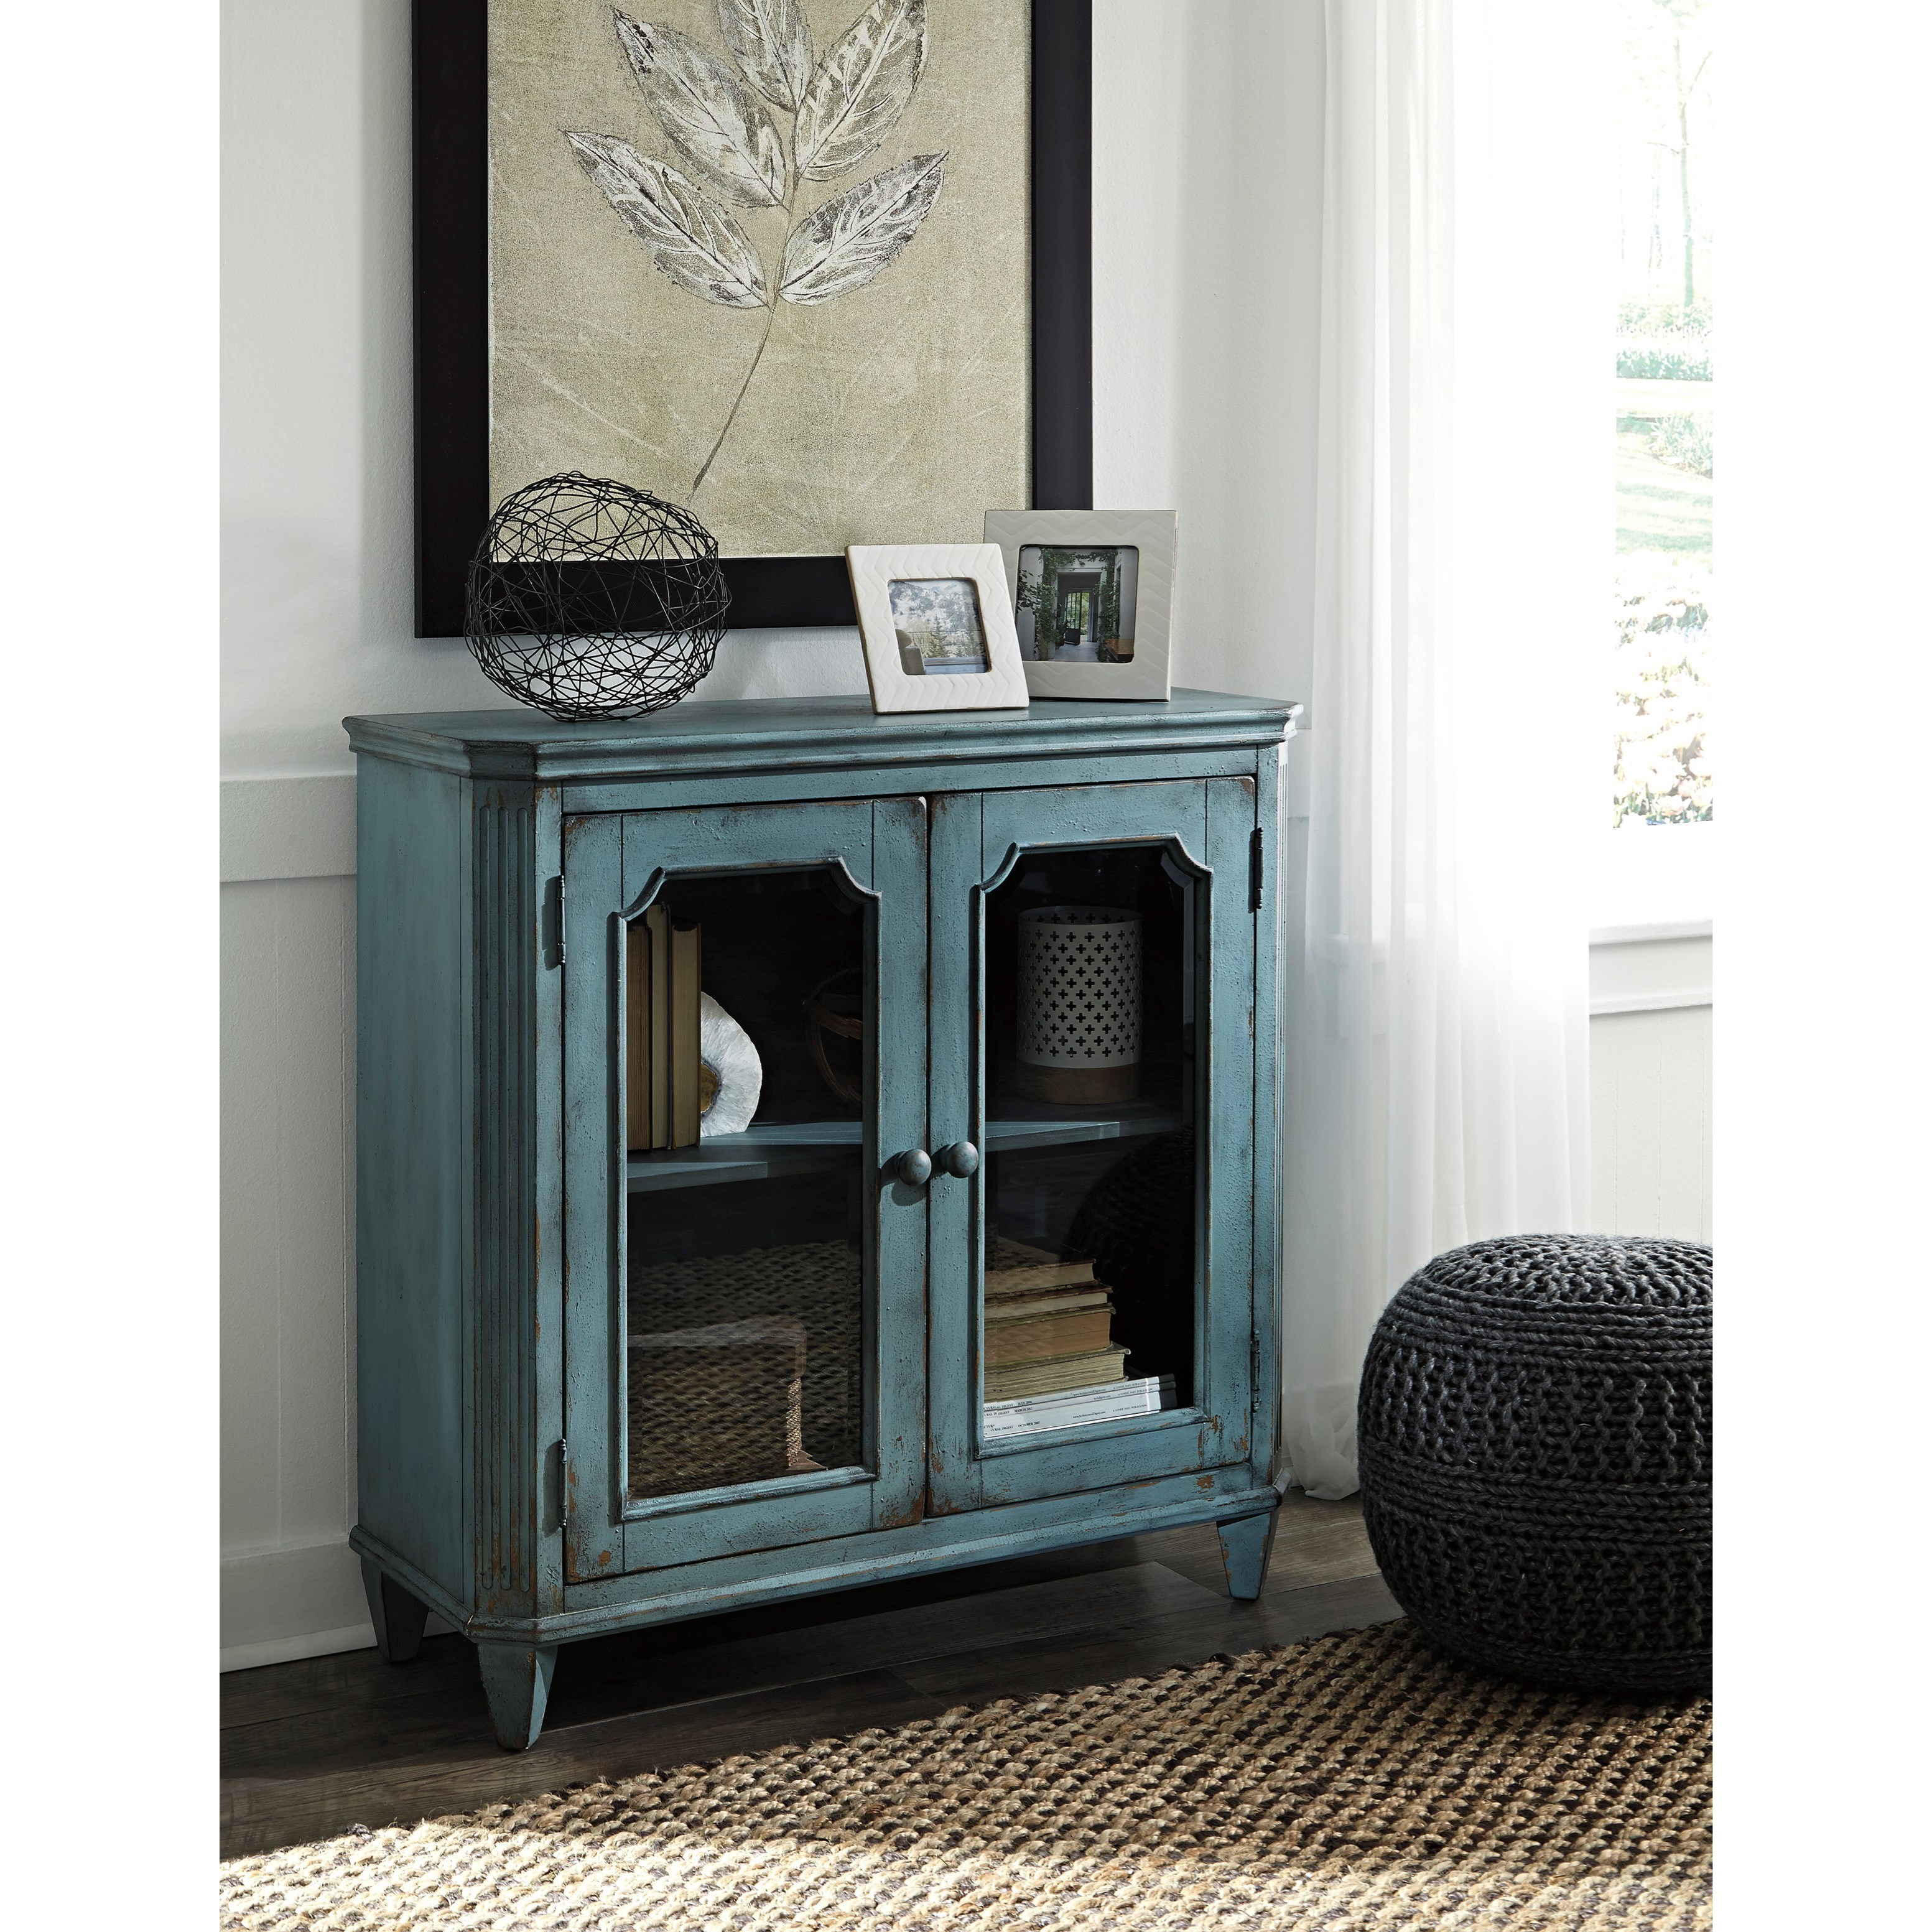 French Provincial Style Glass Door Accent Cabinet in Antique Teal Finish  sc 1 st  Wolf Furniture : door accents - pezcame.com